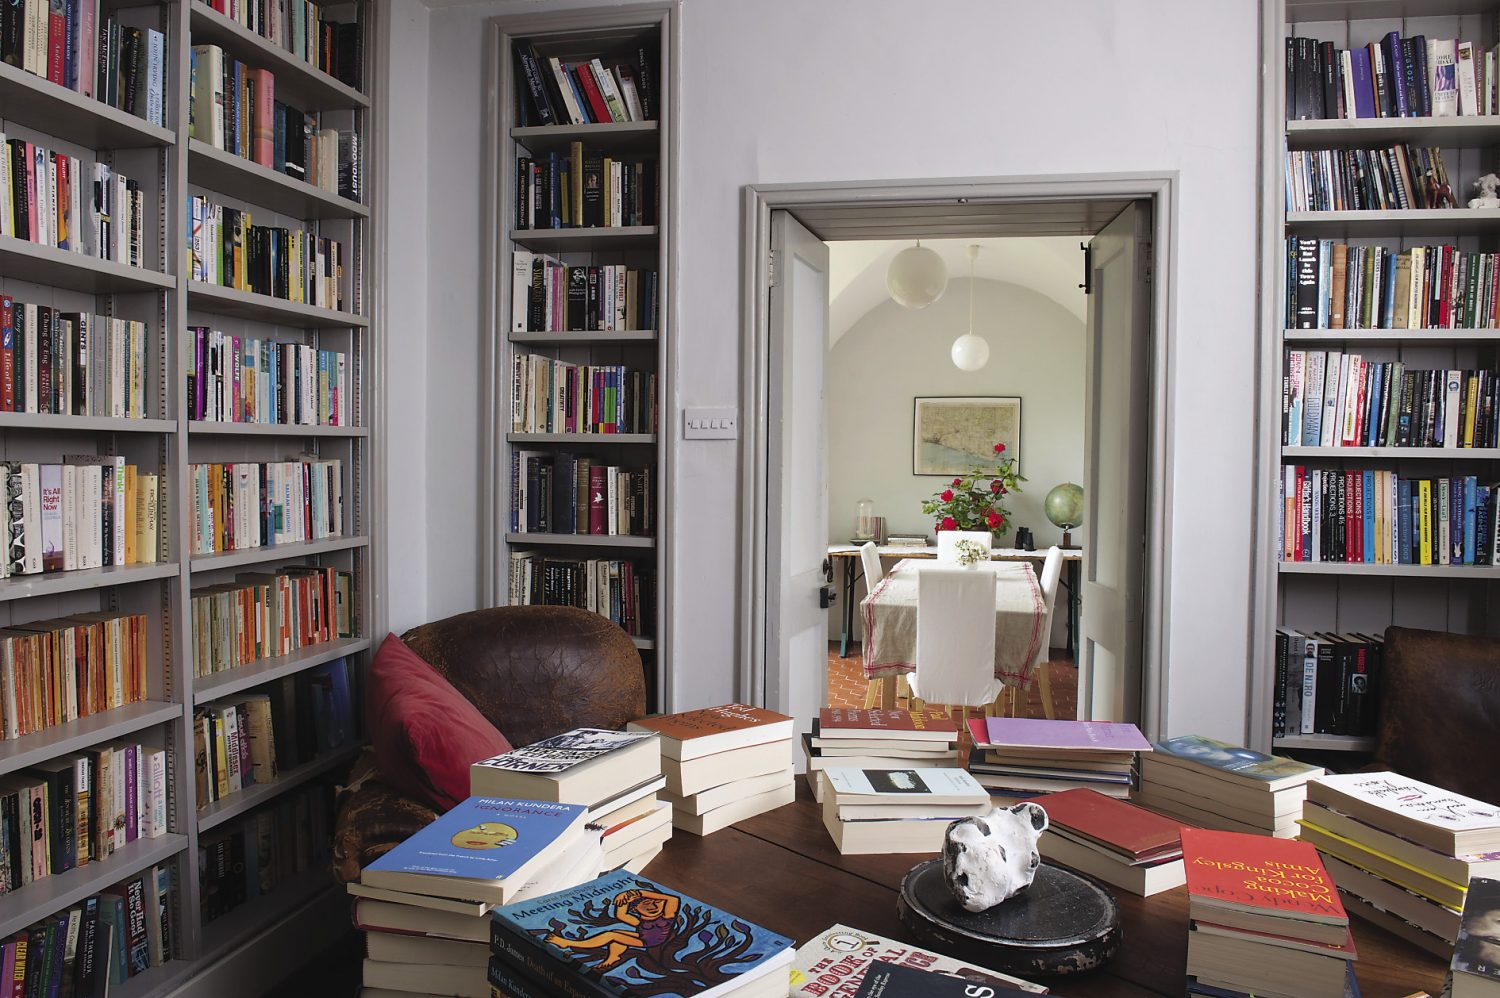 An anteroom is used according to the guests' requirements as a breakfast room, games room or chill-out space. There are floor to ceiling shelves stuffed with books, and between two leather club chairs, a circular mahogany table also offers a carefully arranged selection of more fiction along with plenty of field guides, including the now highly collectable Observer guides